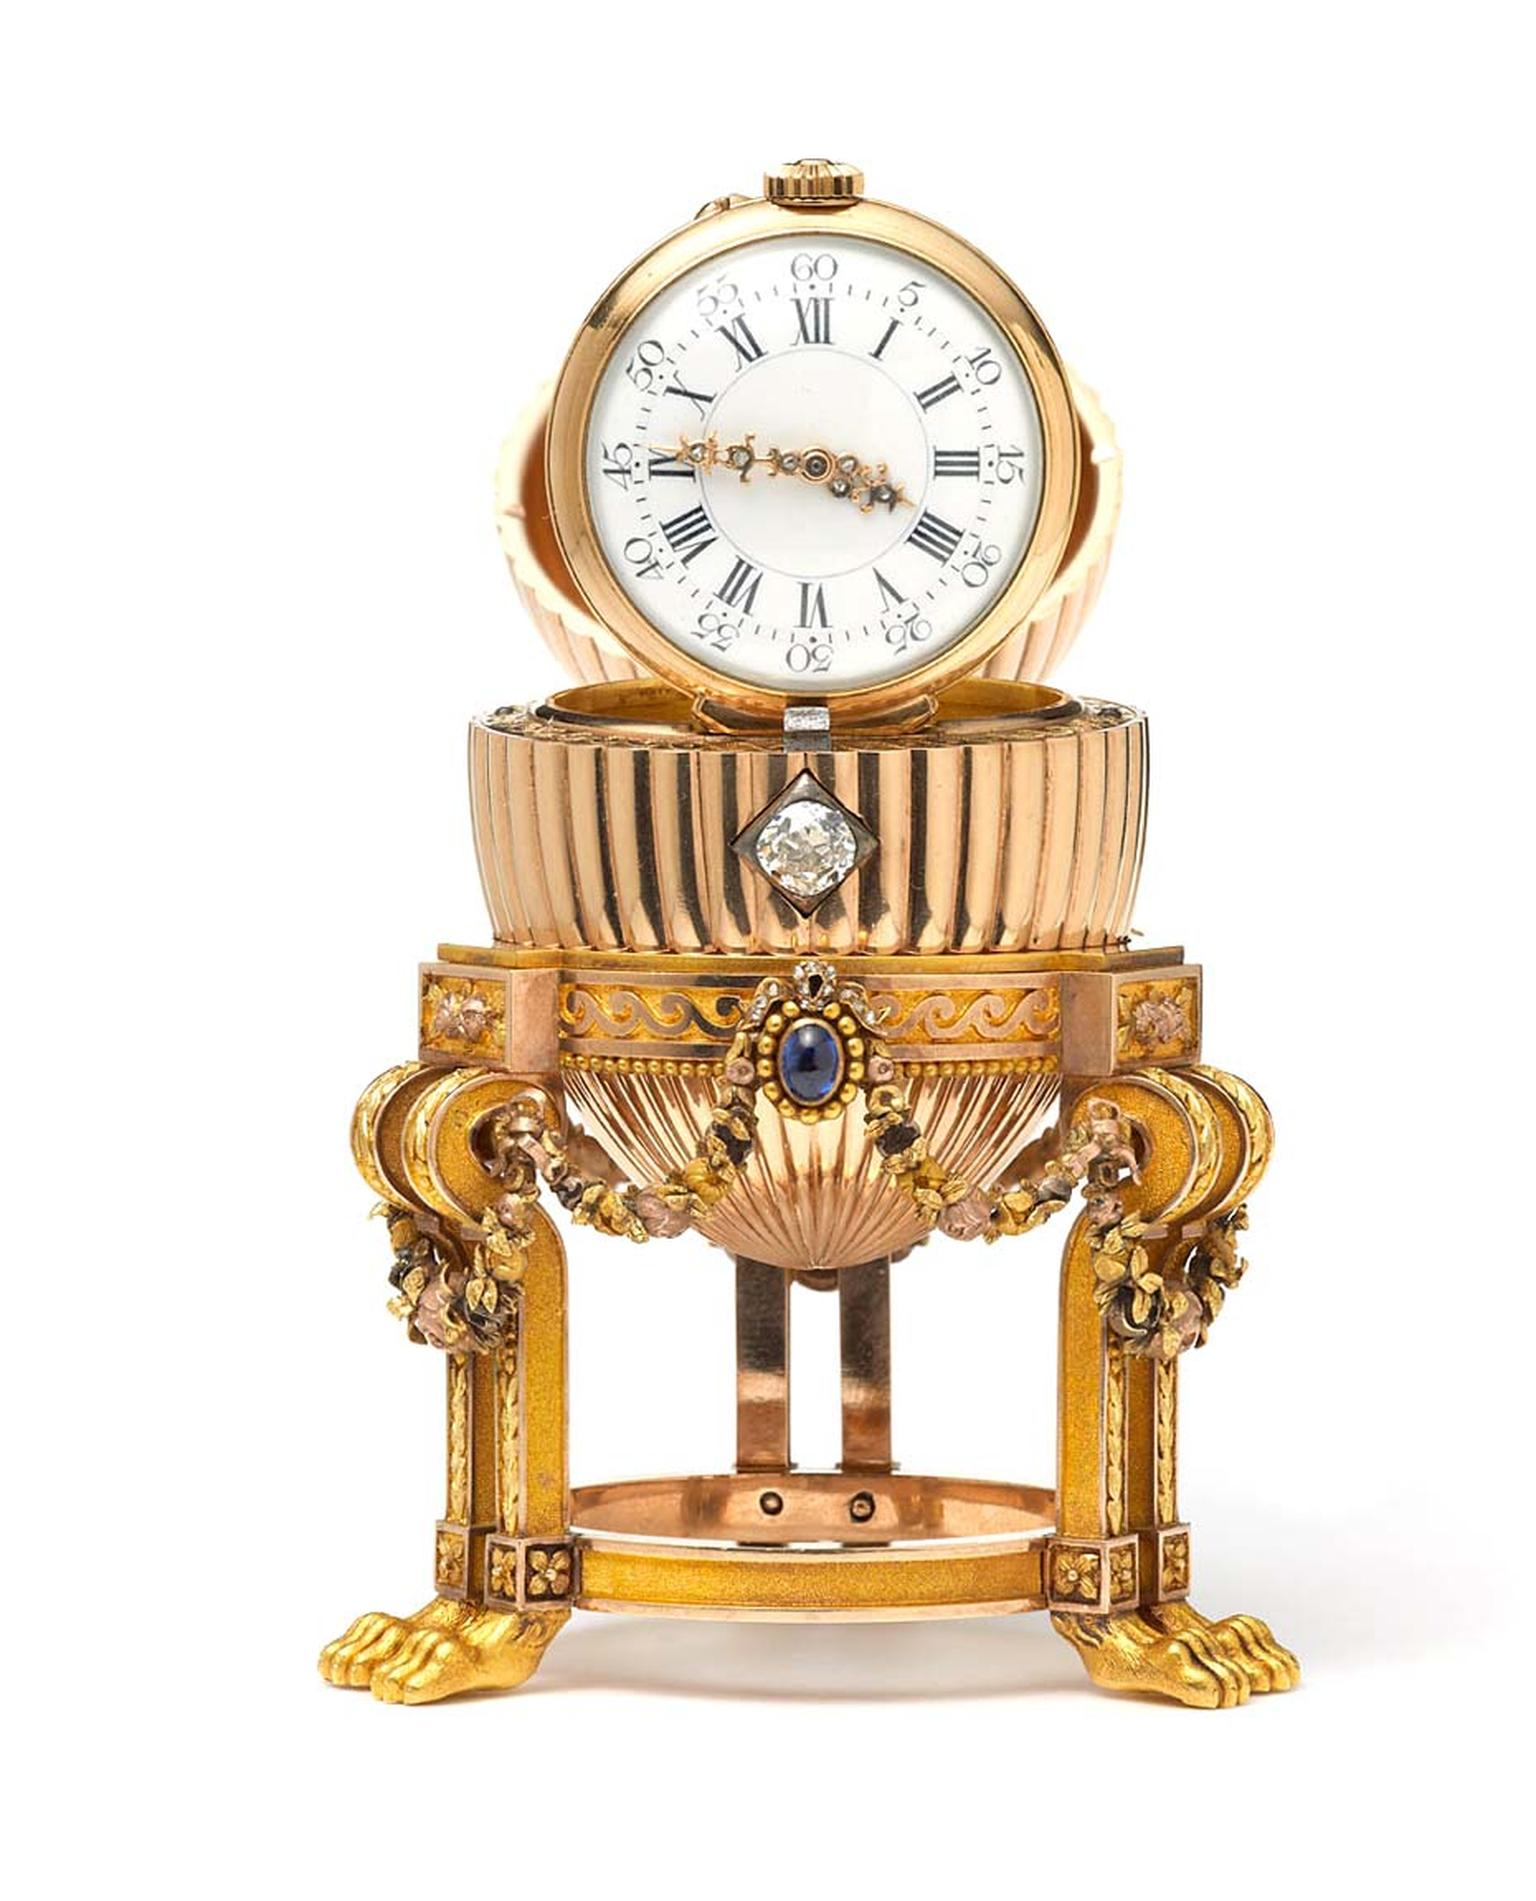 After missing for over a century, the Third Imperial Faberge Easter Egg, will be on display at Court Jewellers Wartski in Mayfair from April 14-17.